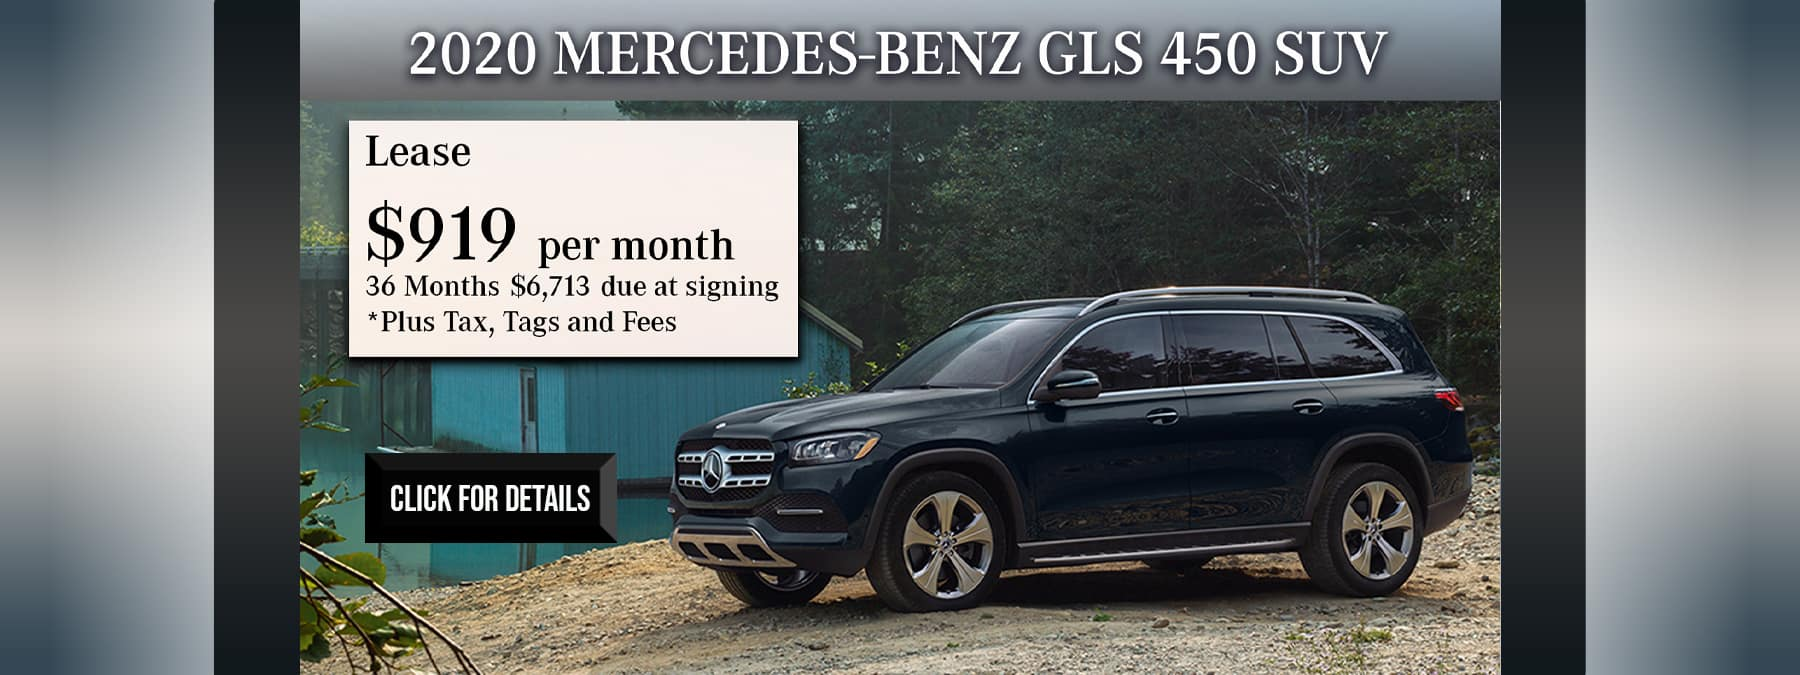 OCTOBER GLS HOME PAGE OFFER